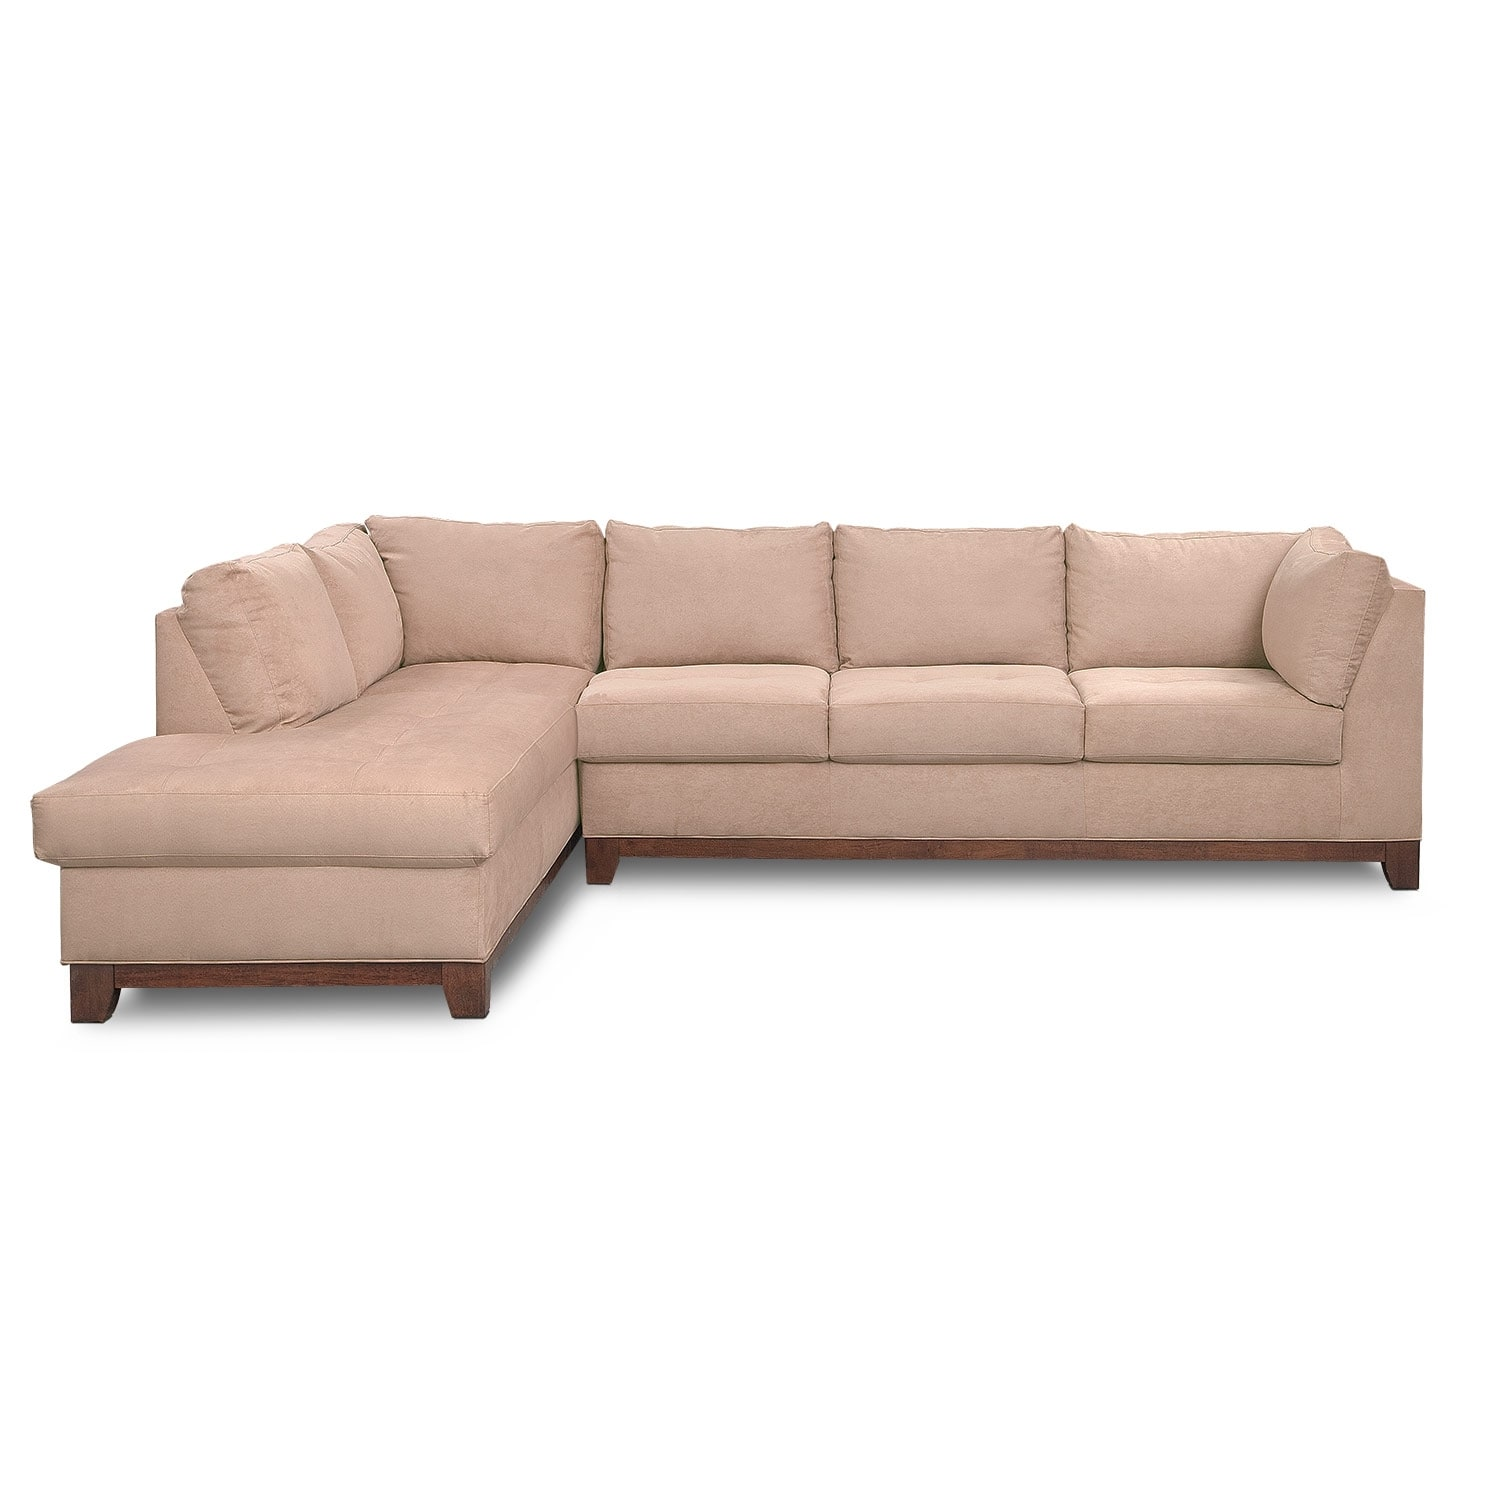 Soho 2 piece sectional with left facing chaise for 2 piece sectional sofa with chaise